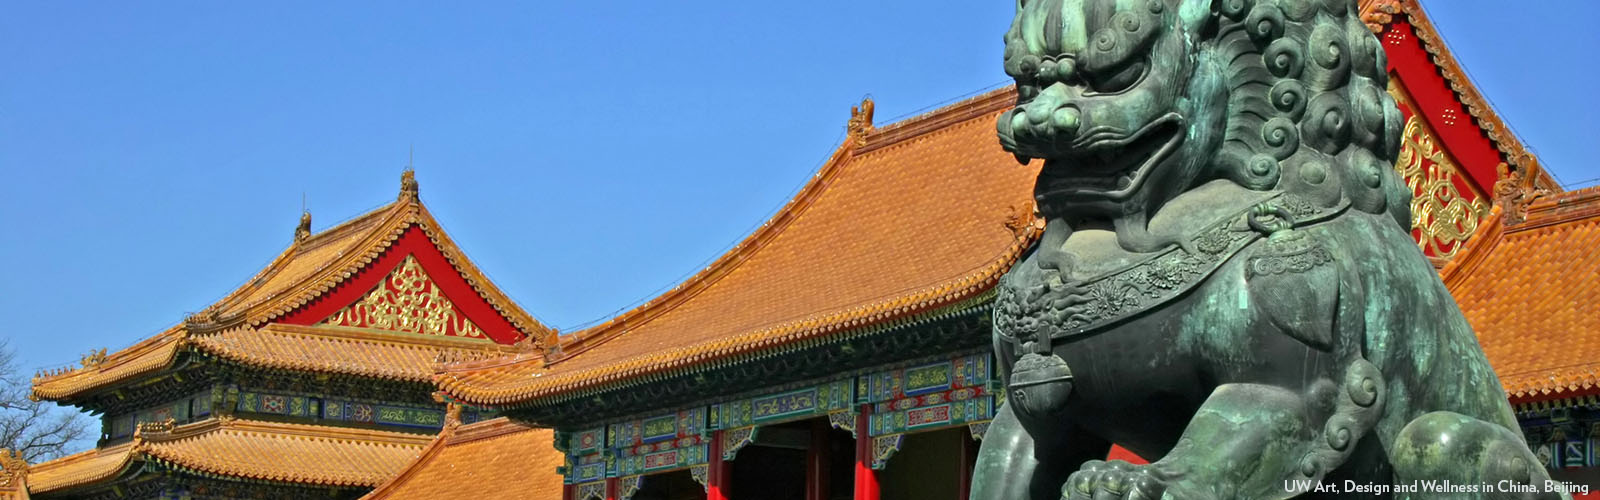 Photo of architecture in Beijing, China